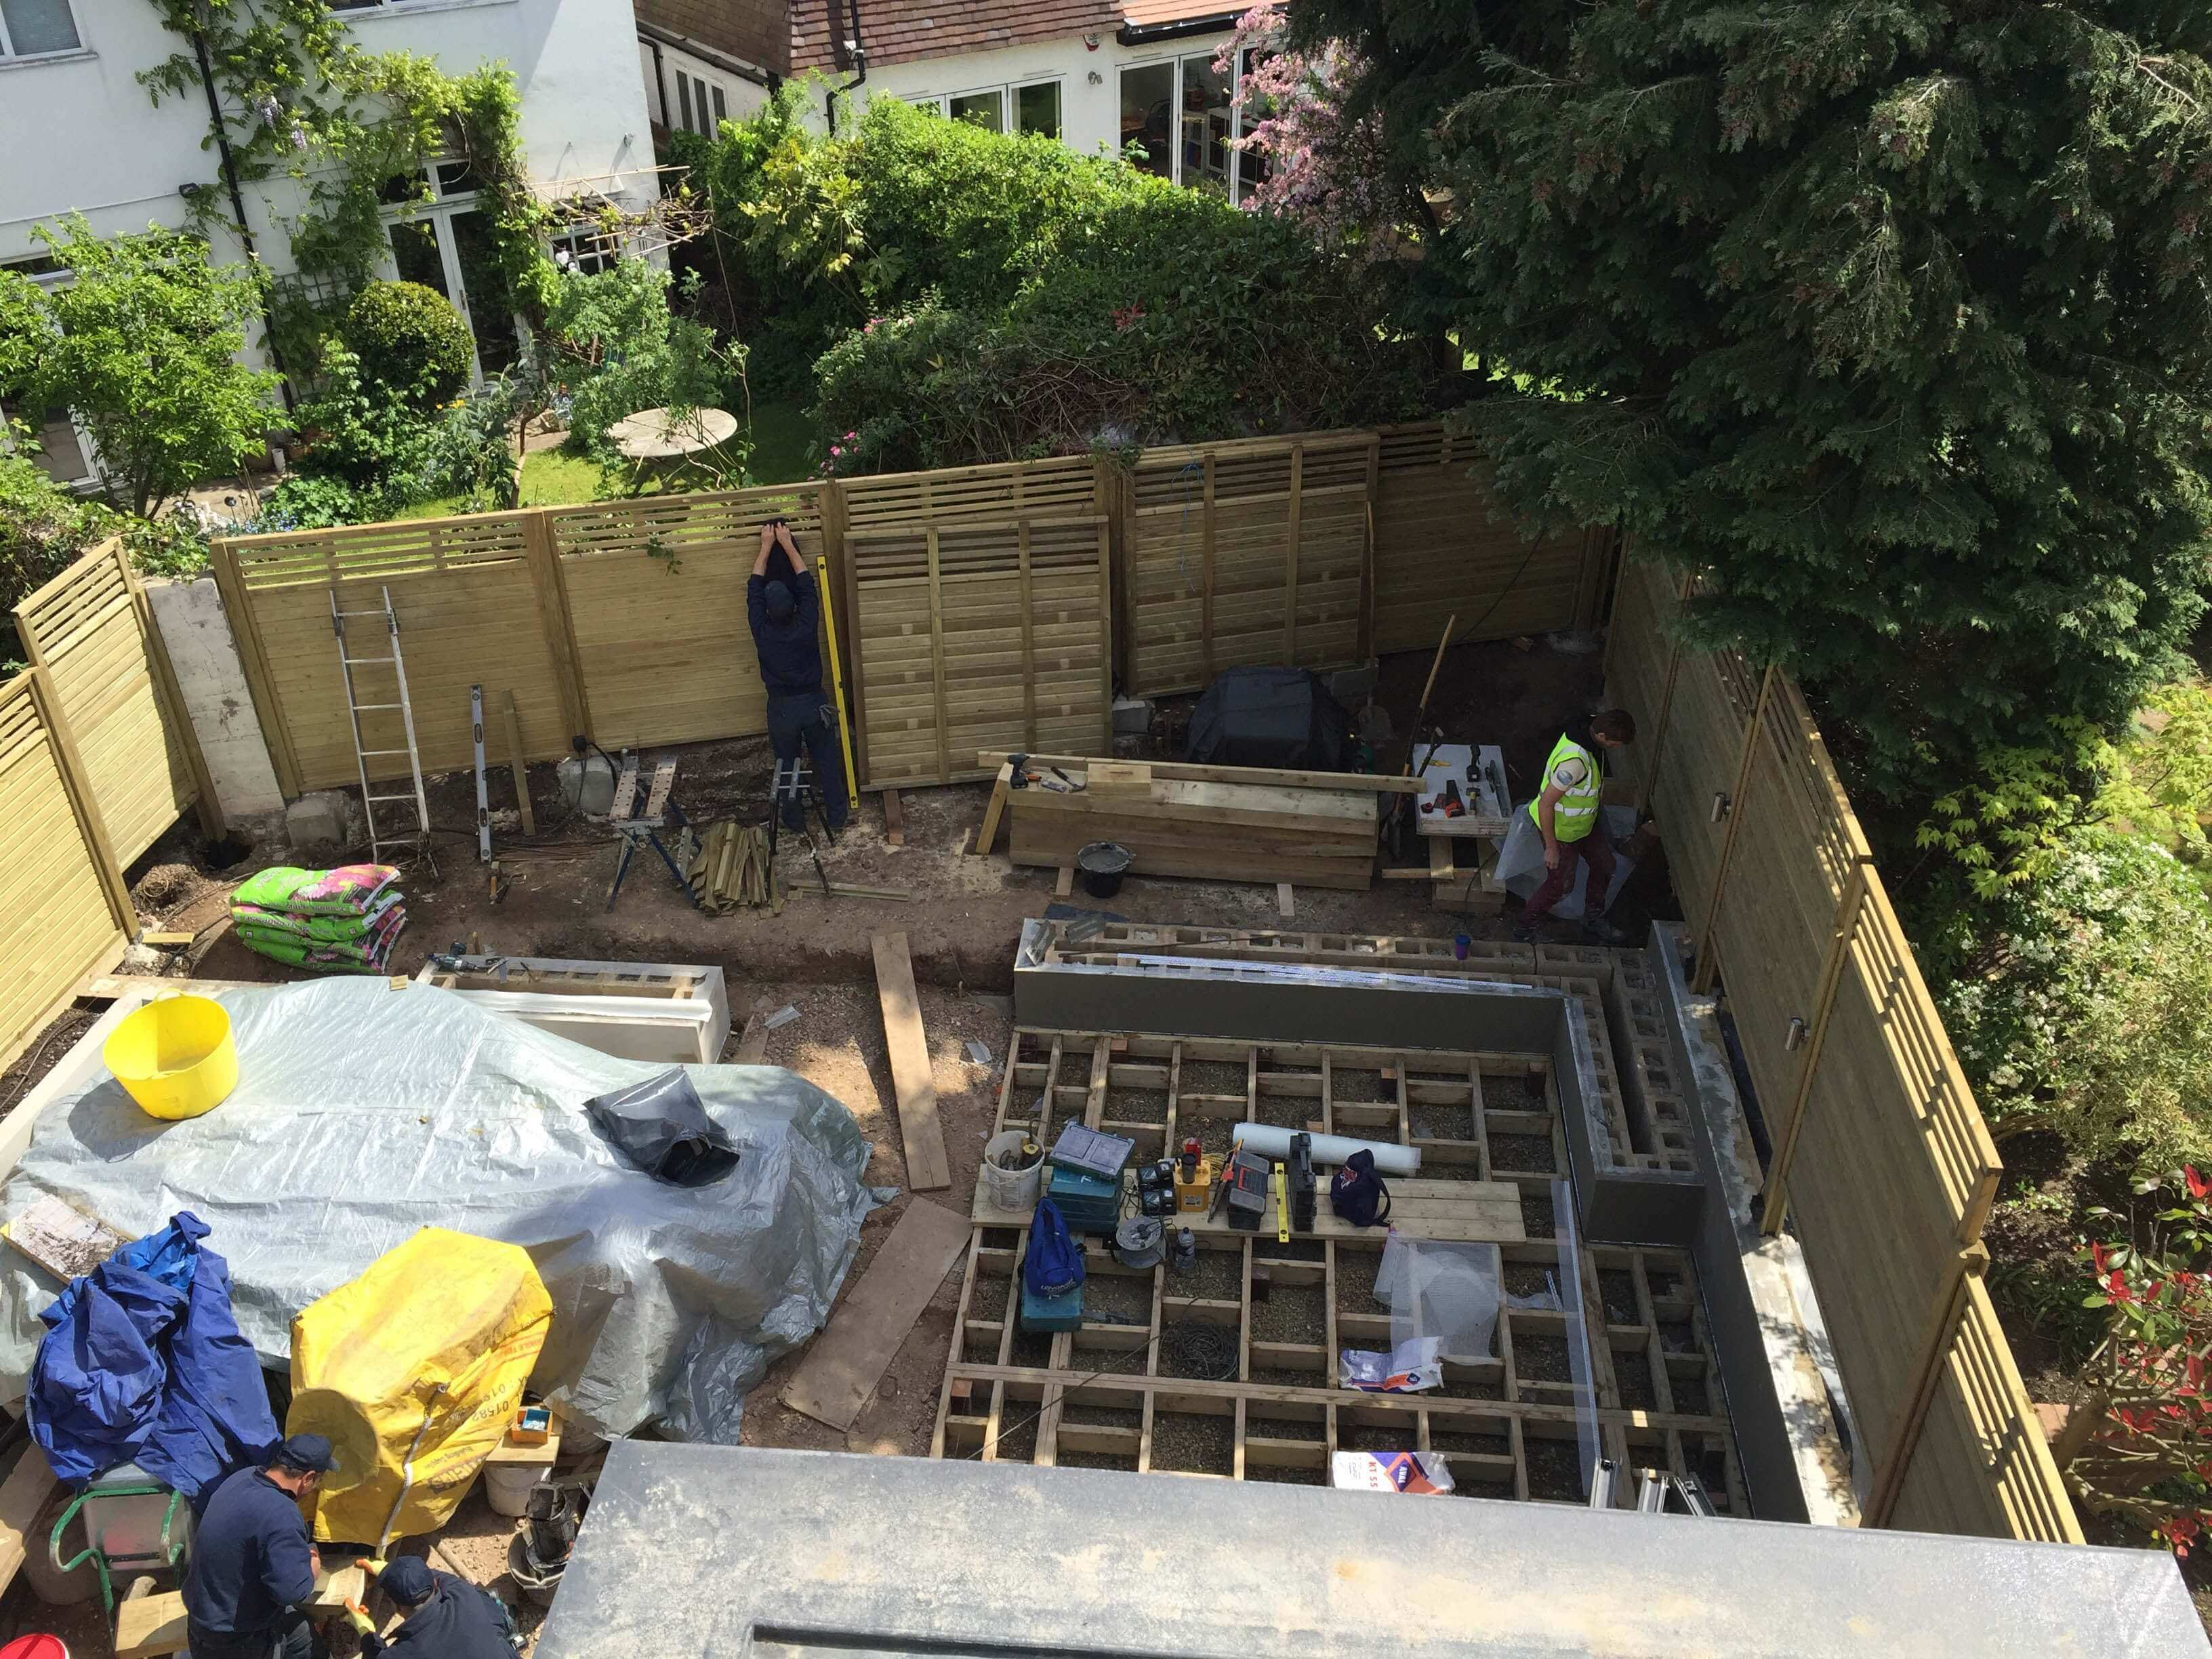 Building works starting in garden